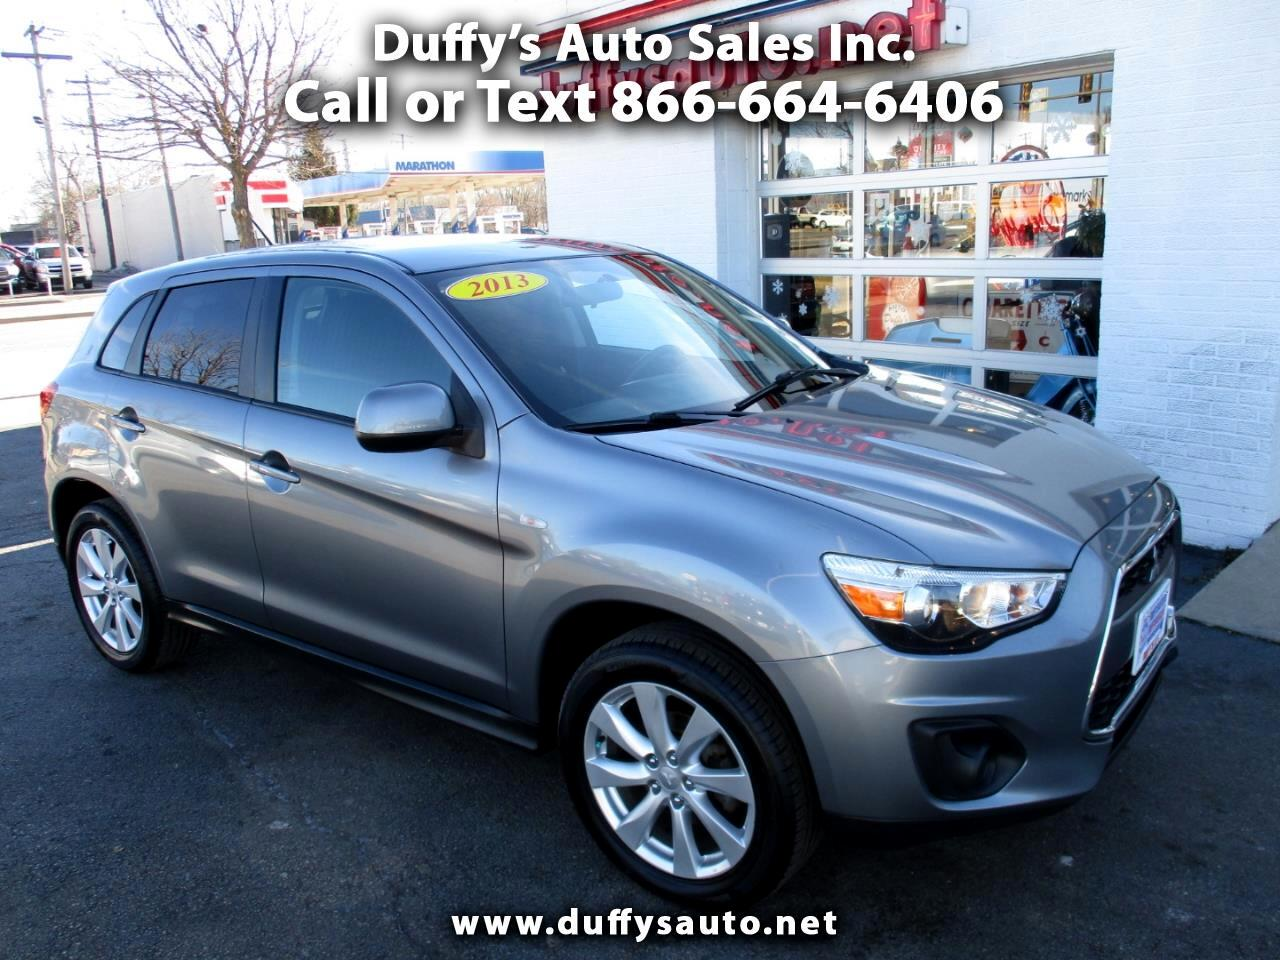 Used Cars For Sale Ottawa Il 61350 Duffys Auto Sales Inc 03 F250 V10 Fuel Filter 2013 Mitsubishi Outlander Sport Awd 4dr Cvt Es